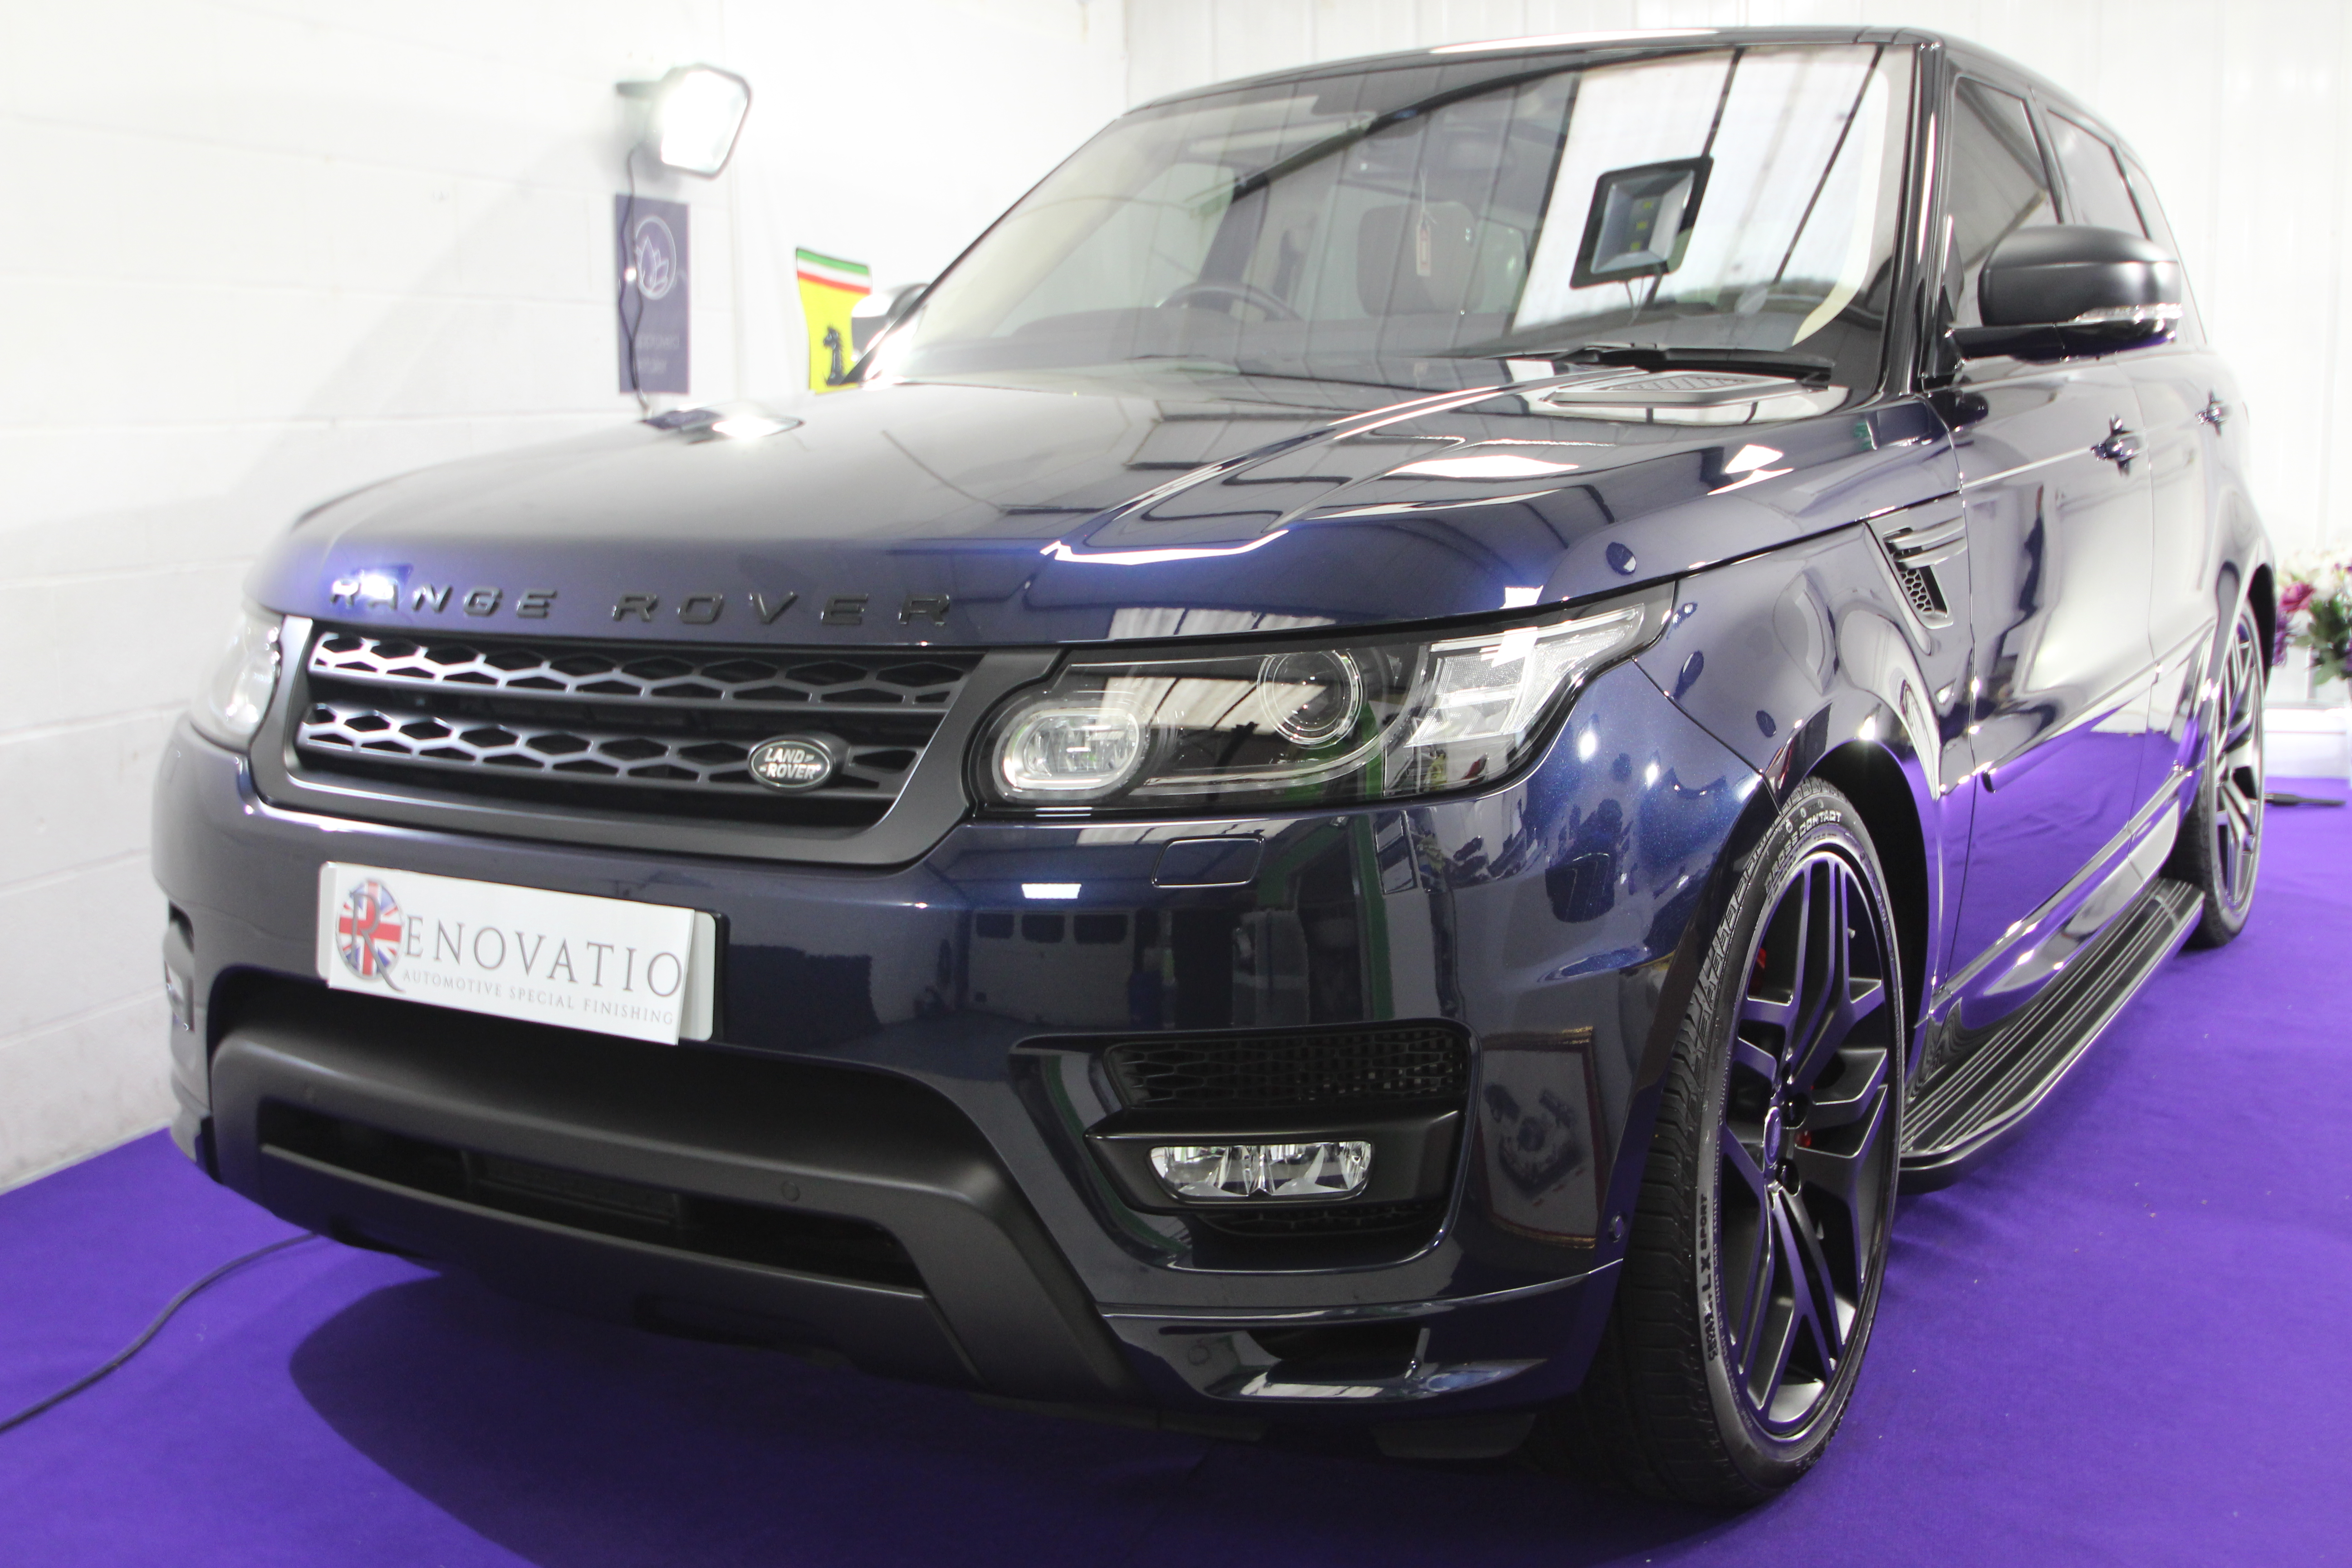 Range Rover Sport correct and coat